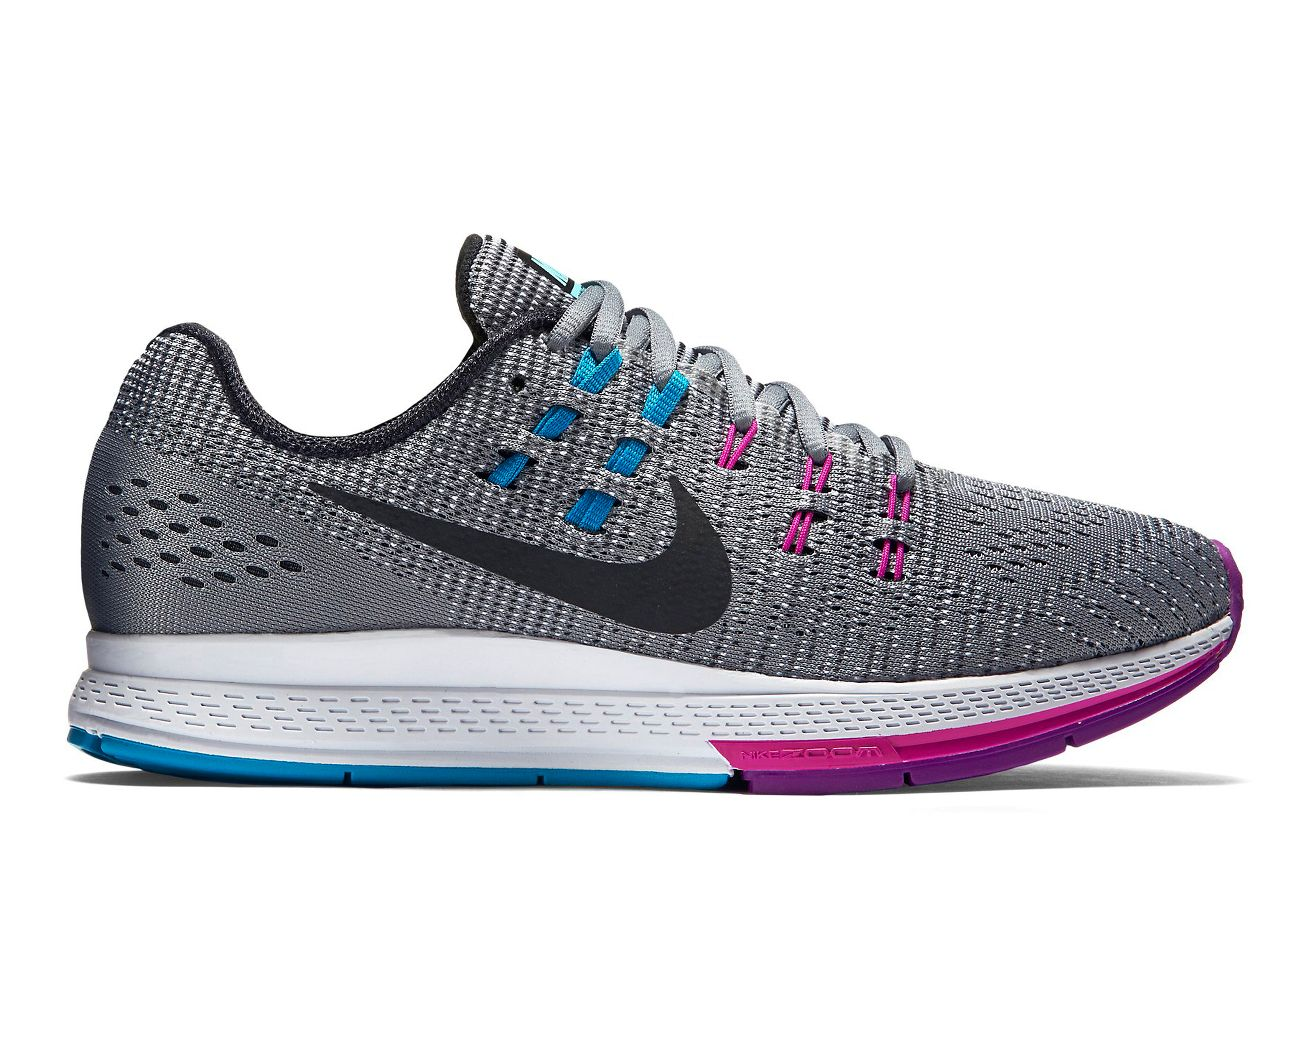 Nike Women's Air Zoom Structure 19 Flash Running Shoes NK-23777593